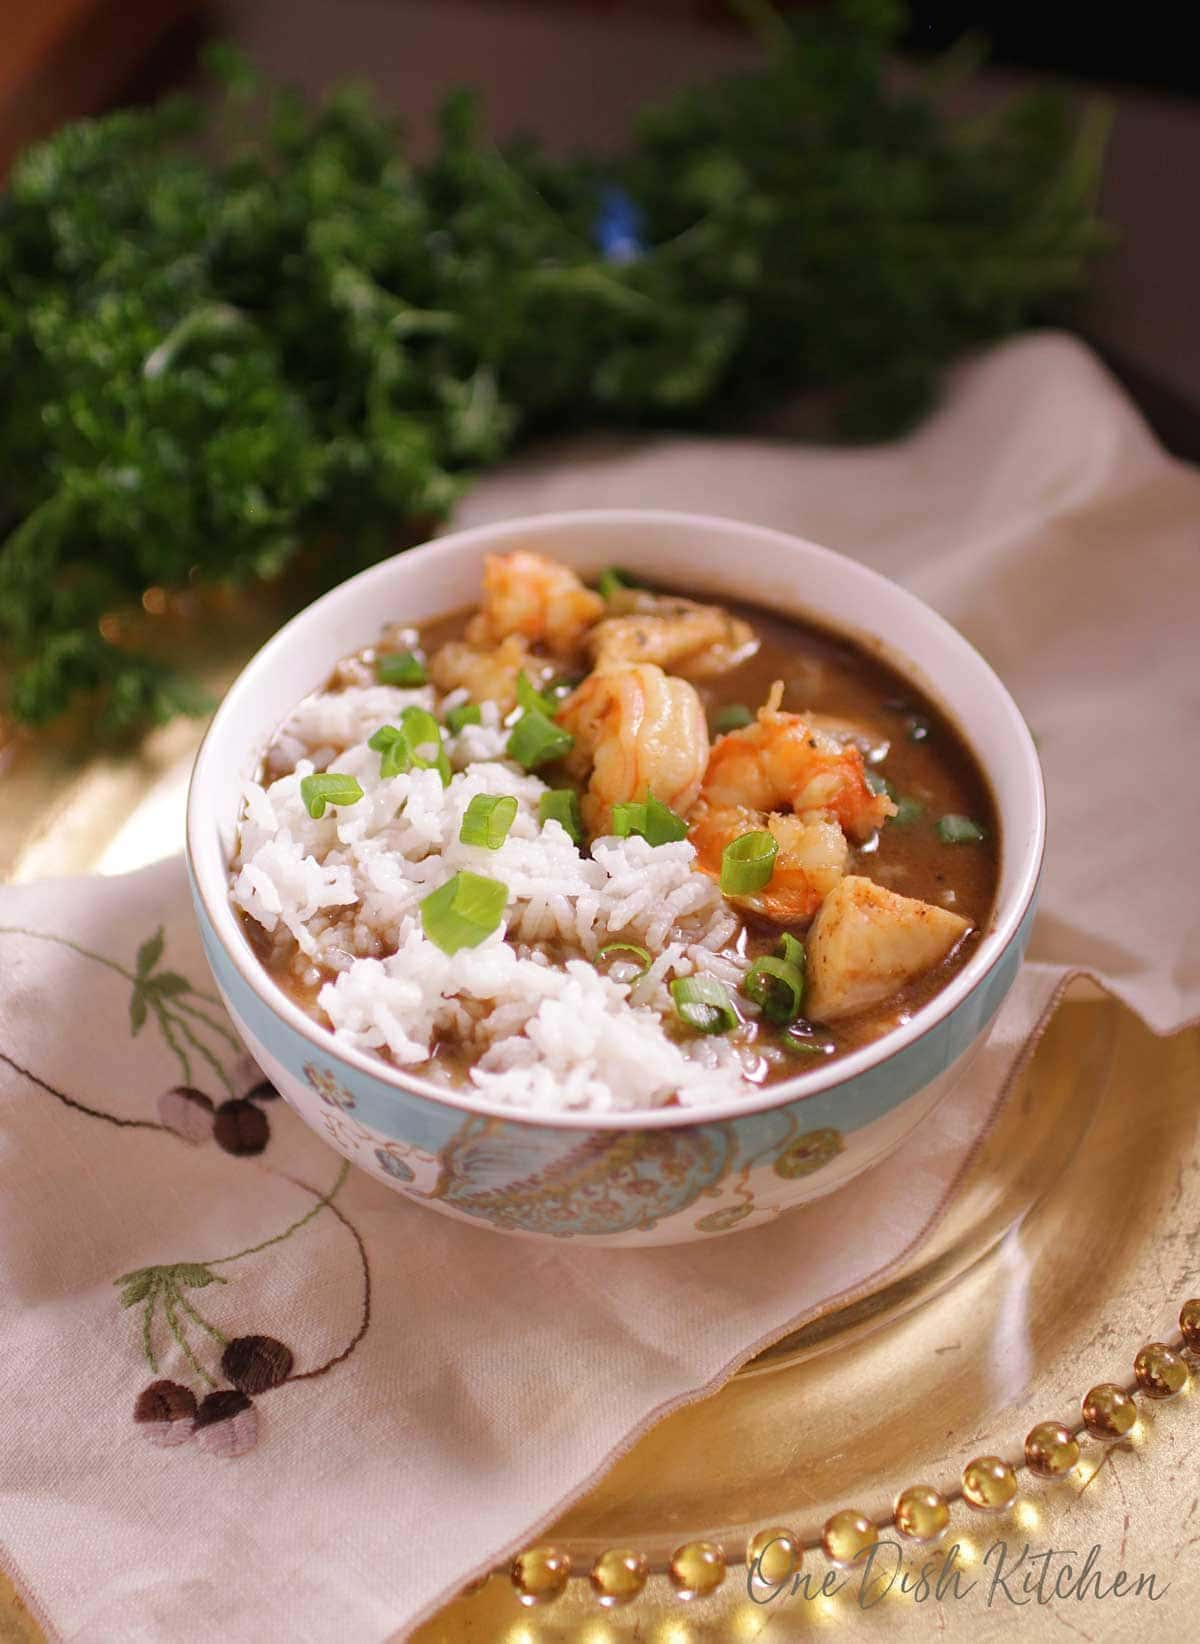 bowl of gumbo with shrimp and white rice on a tray with parsley in the background.